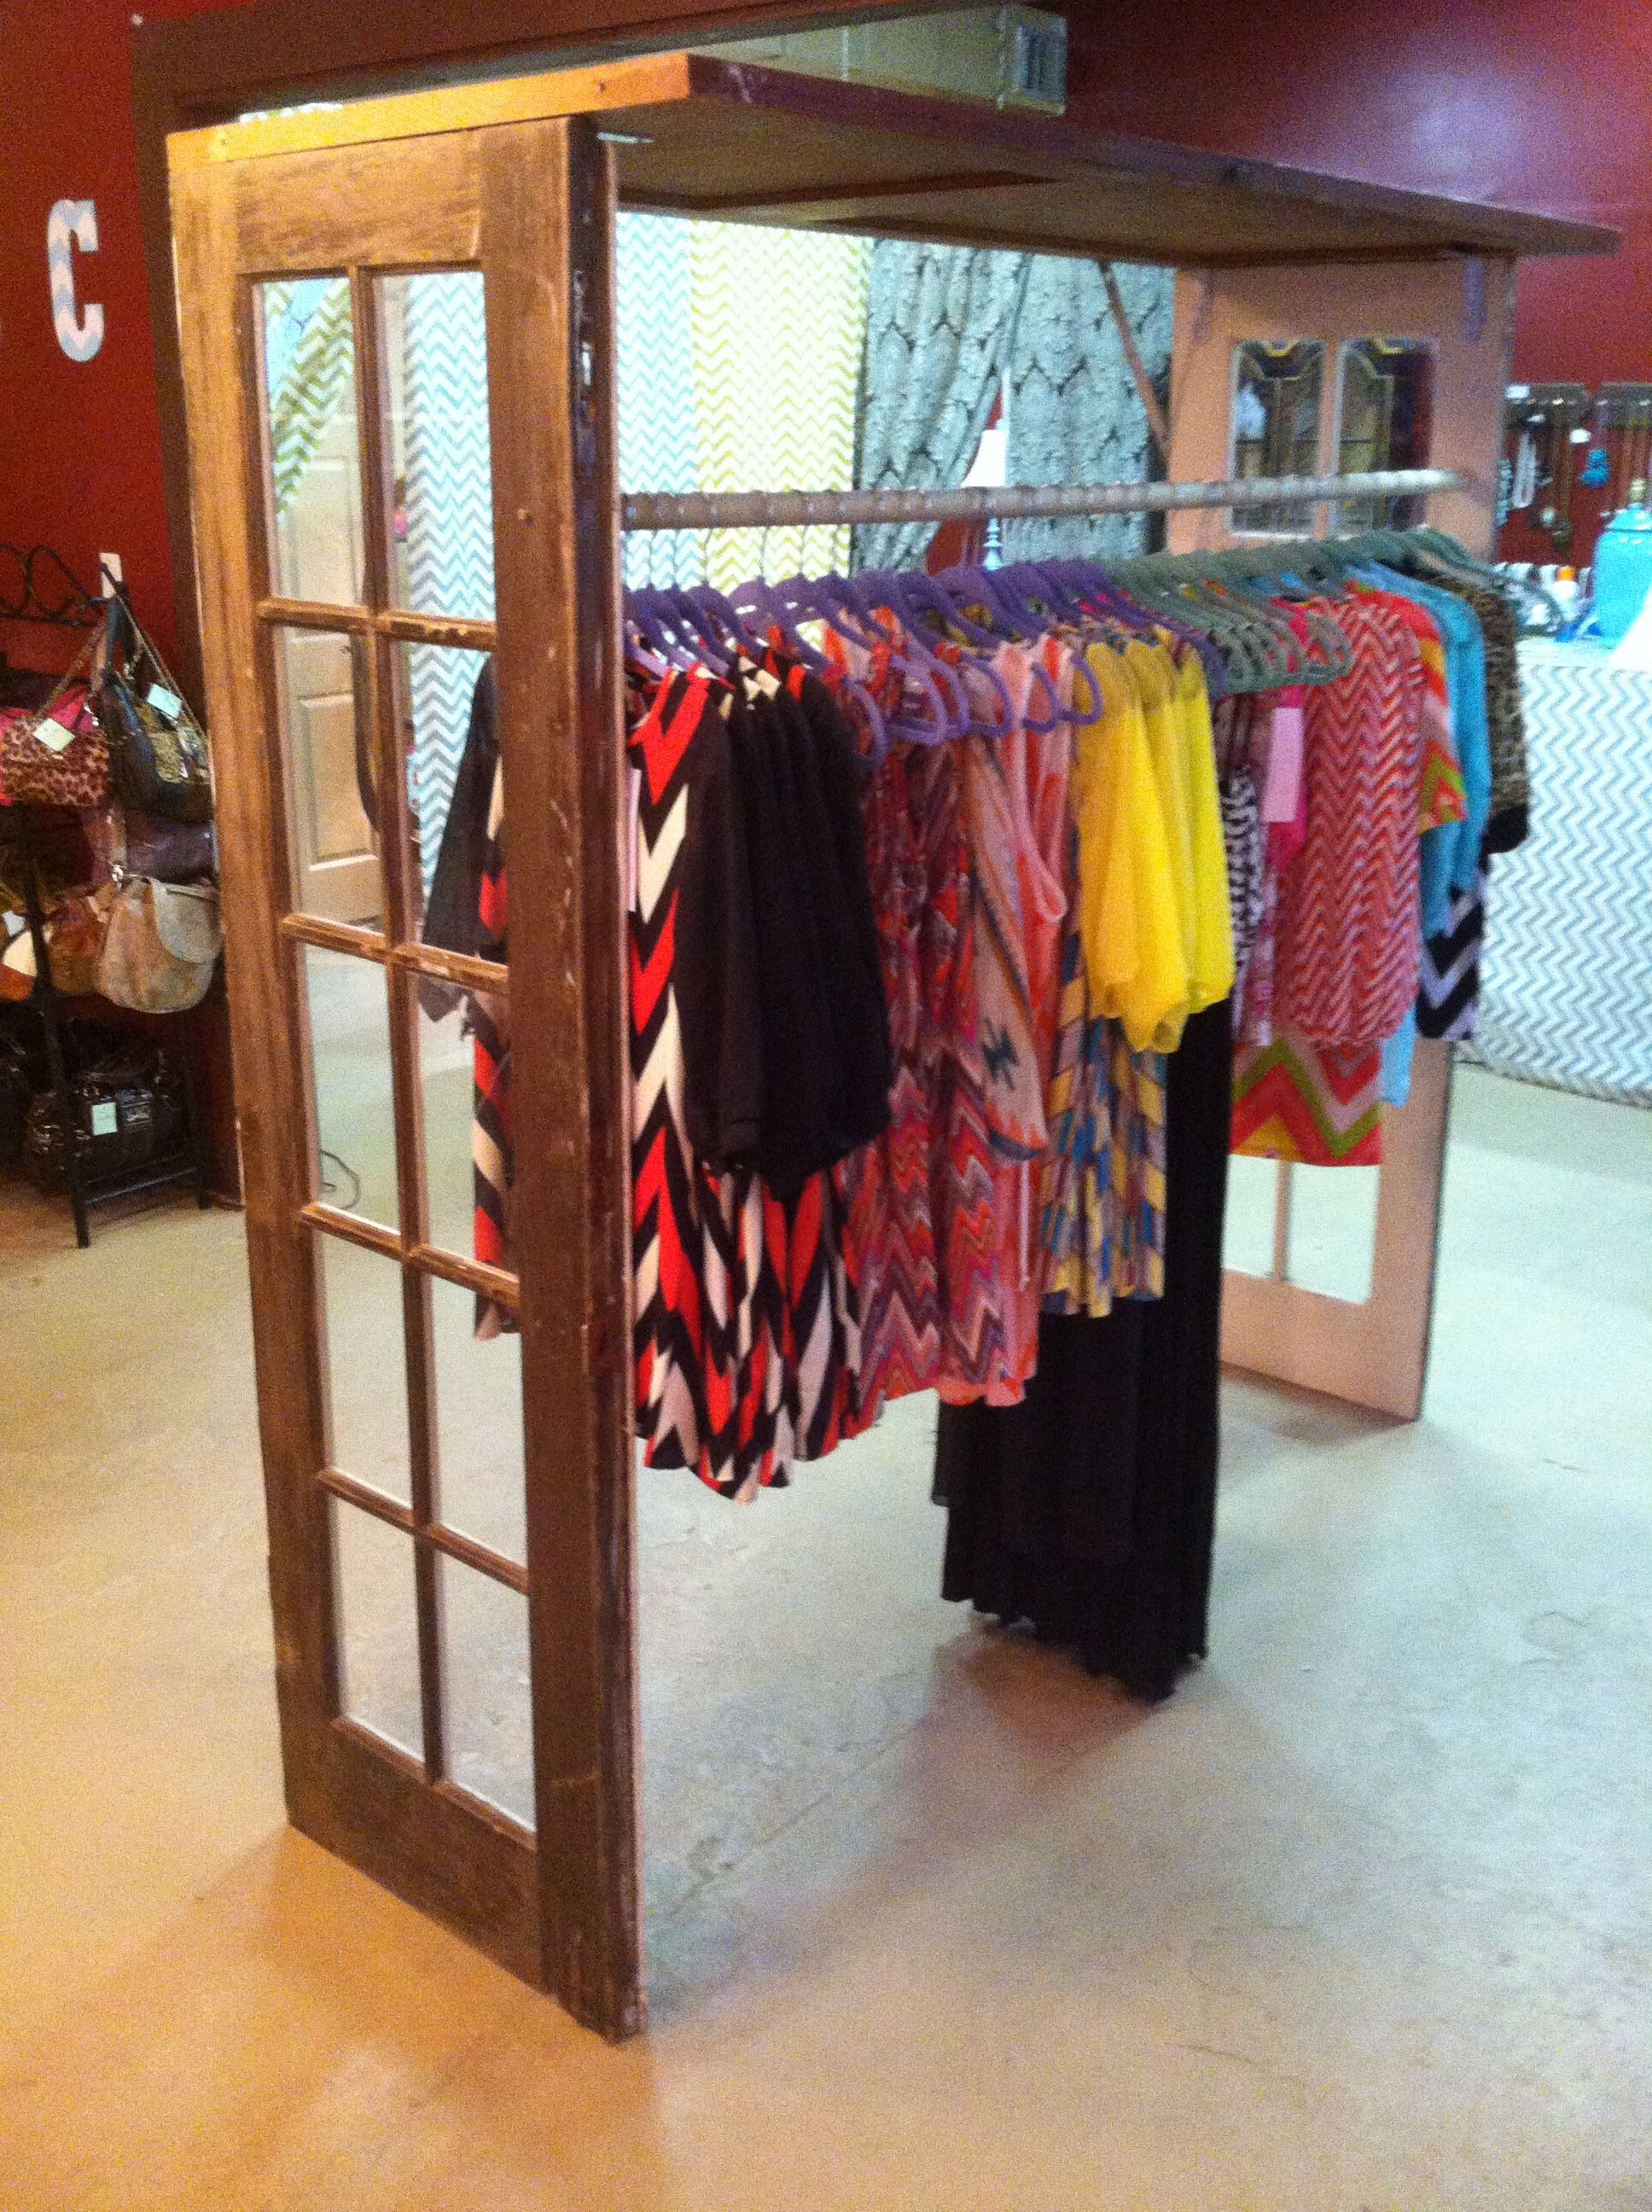 Boutique Clothing Rack Made Of 3 Vintage Doors And A Pole From